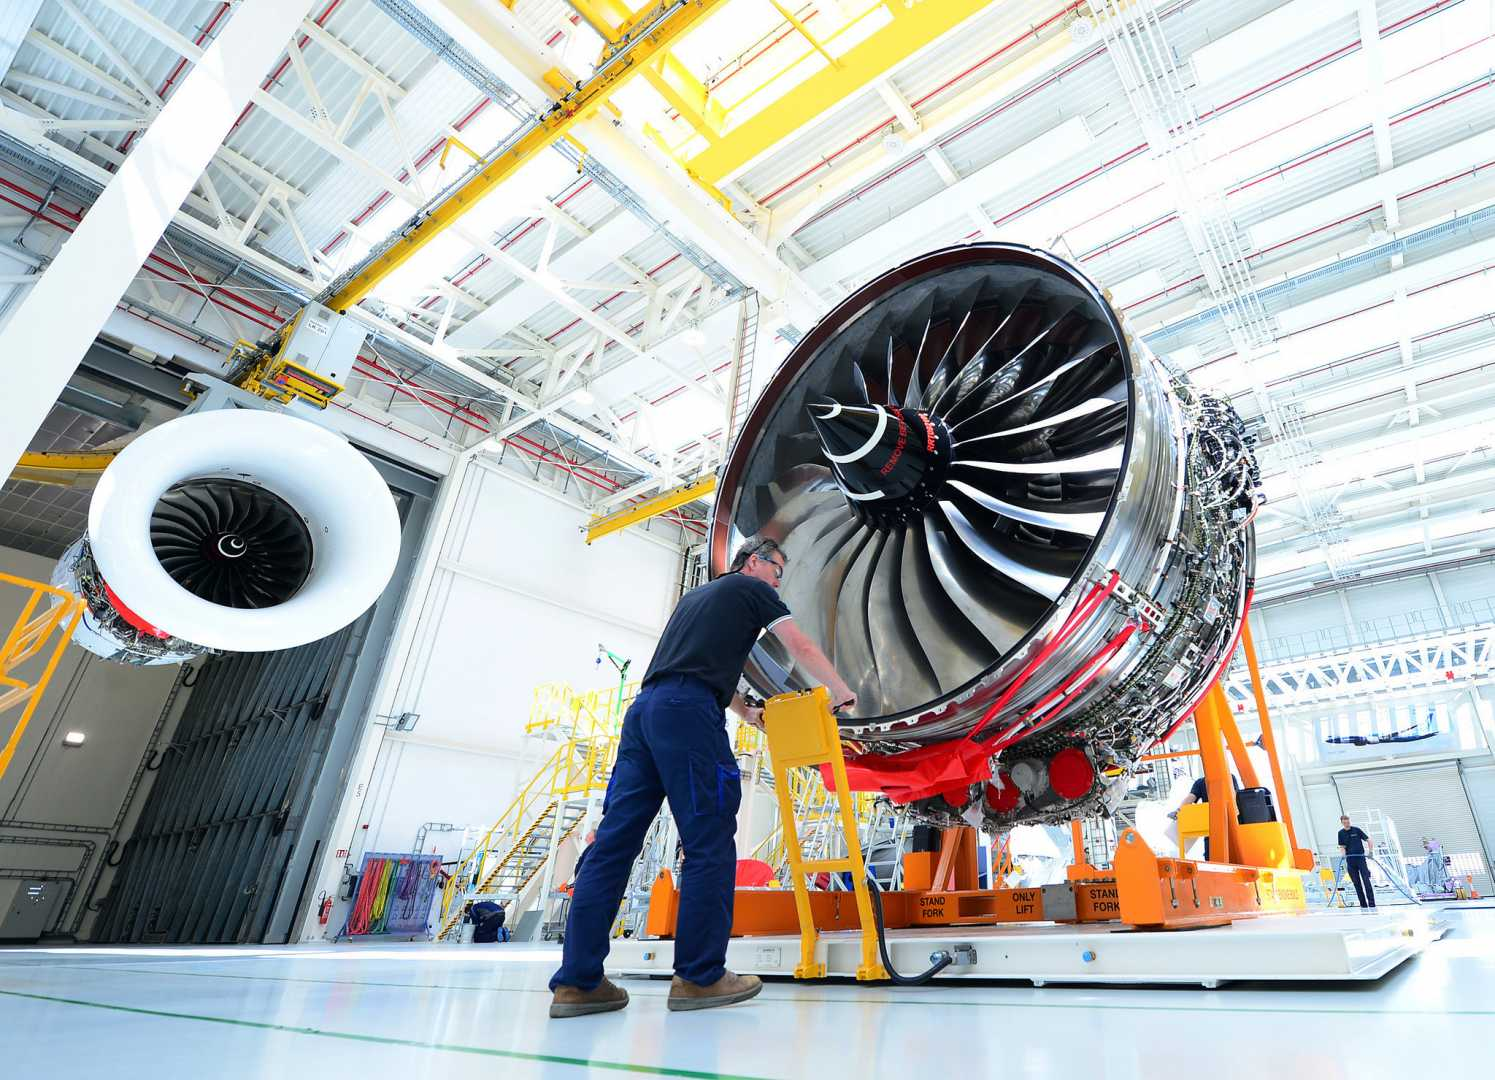 This turbofan jet engine is the power plant for the Airbus A350 XWB - image courtesy of Rolls-Royce.